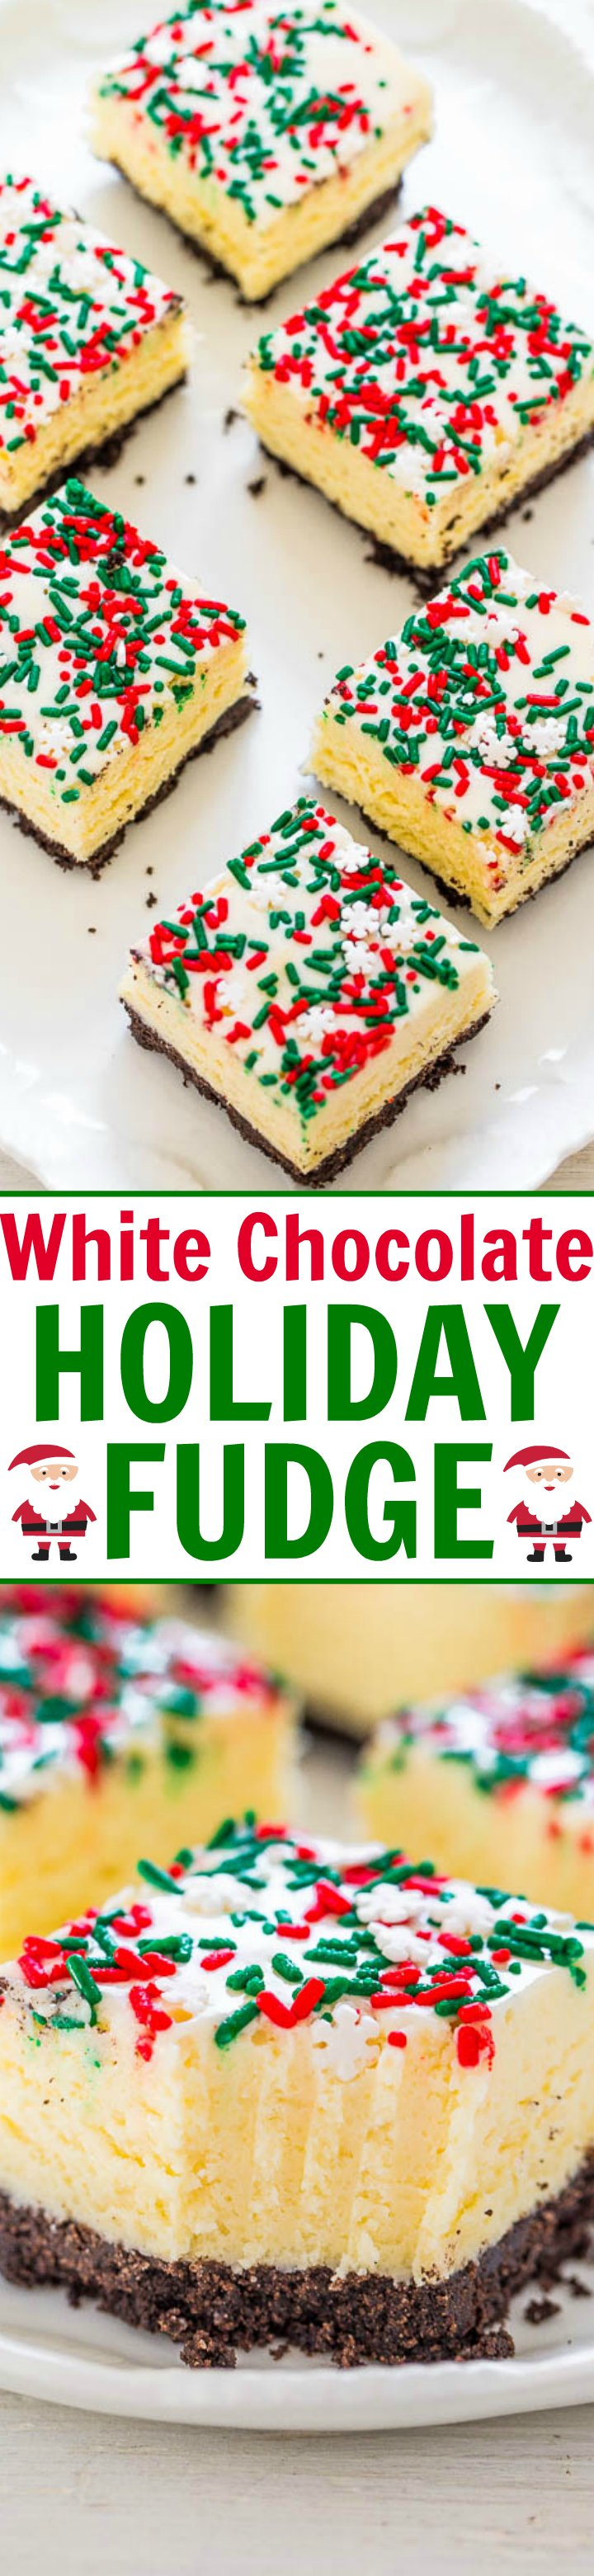 Holiday White Chocolate Fudge - This EASY foolproof fudge recipe is perfect for Christmas and holiday parties!! A double dose of white chocolate with an Oreo Cookie crust for the WIN!!